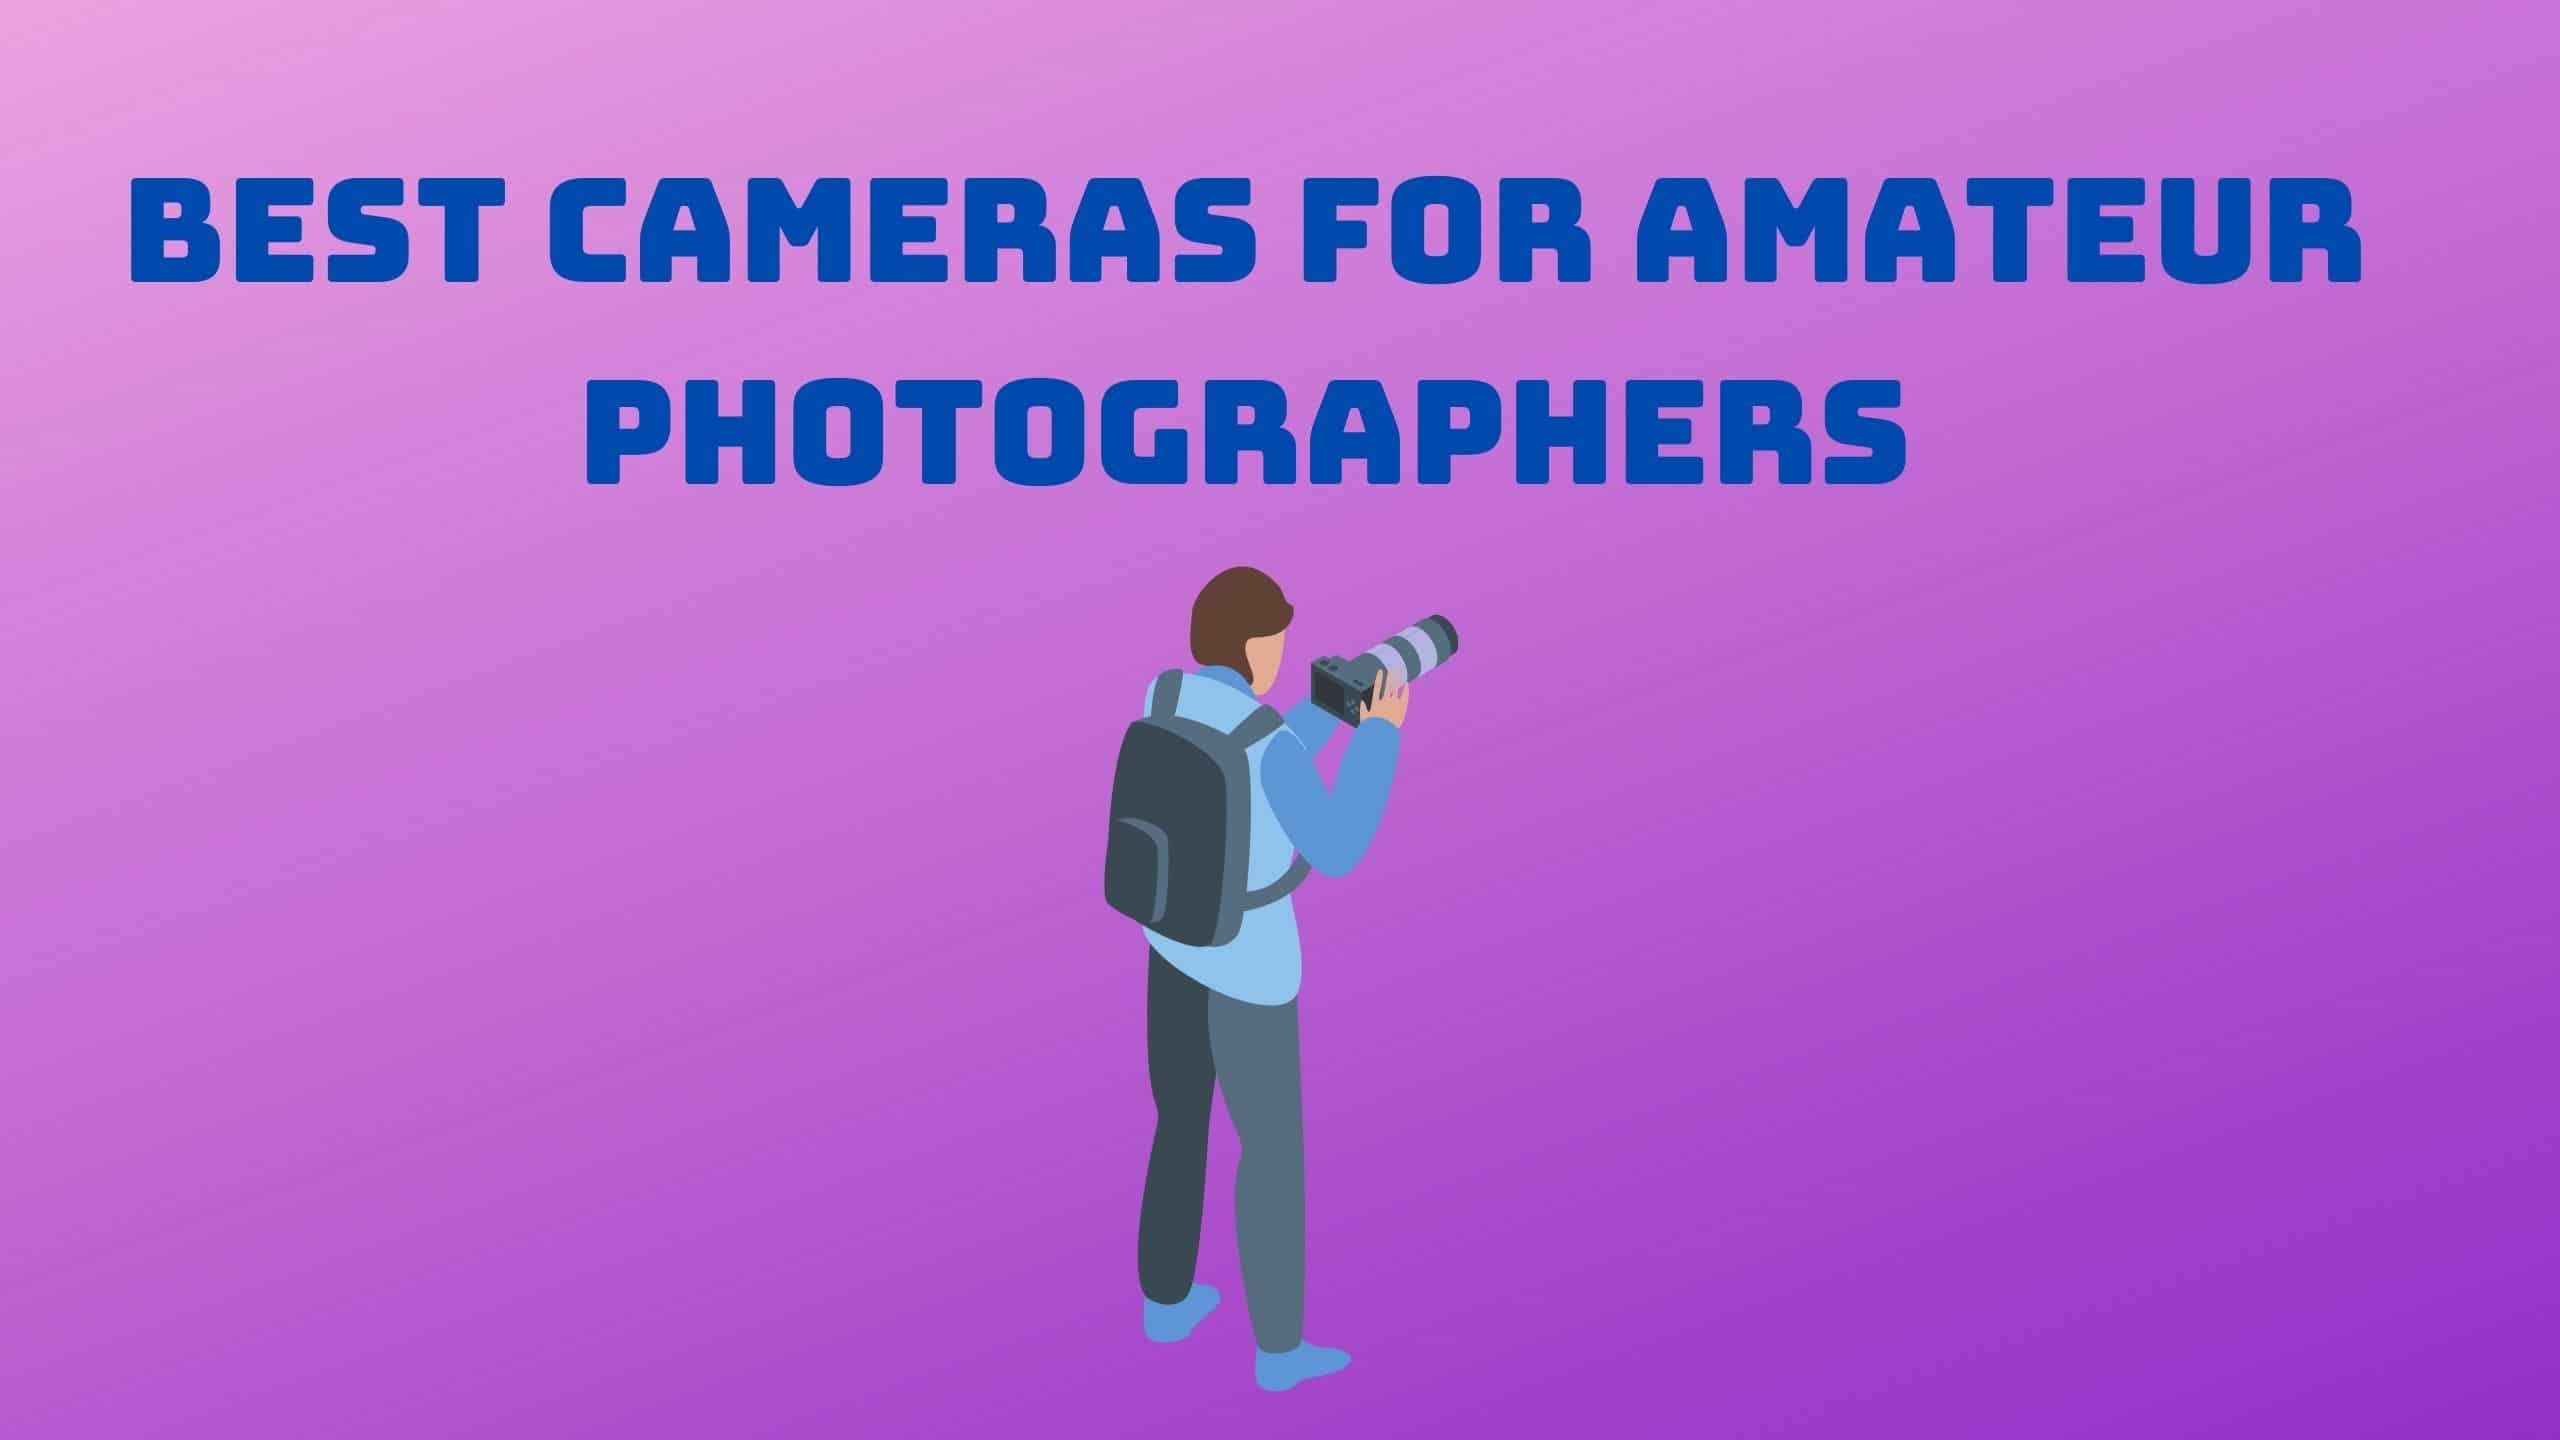 Best Cameras for Amateur Photographers image